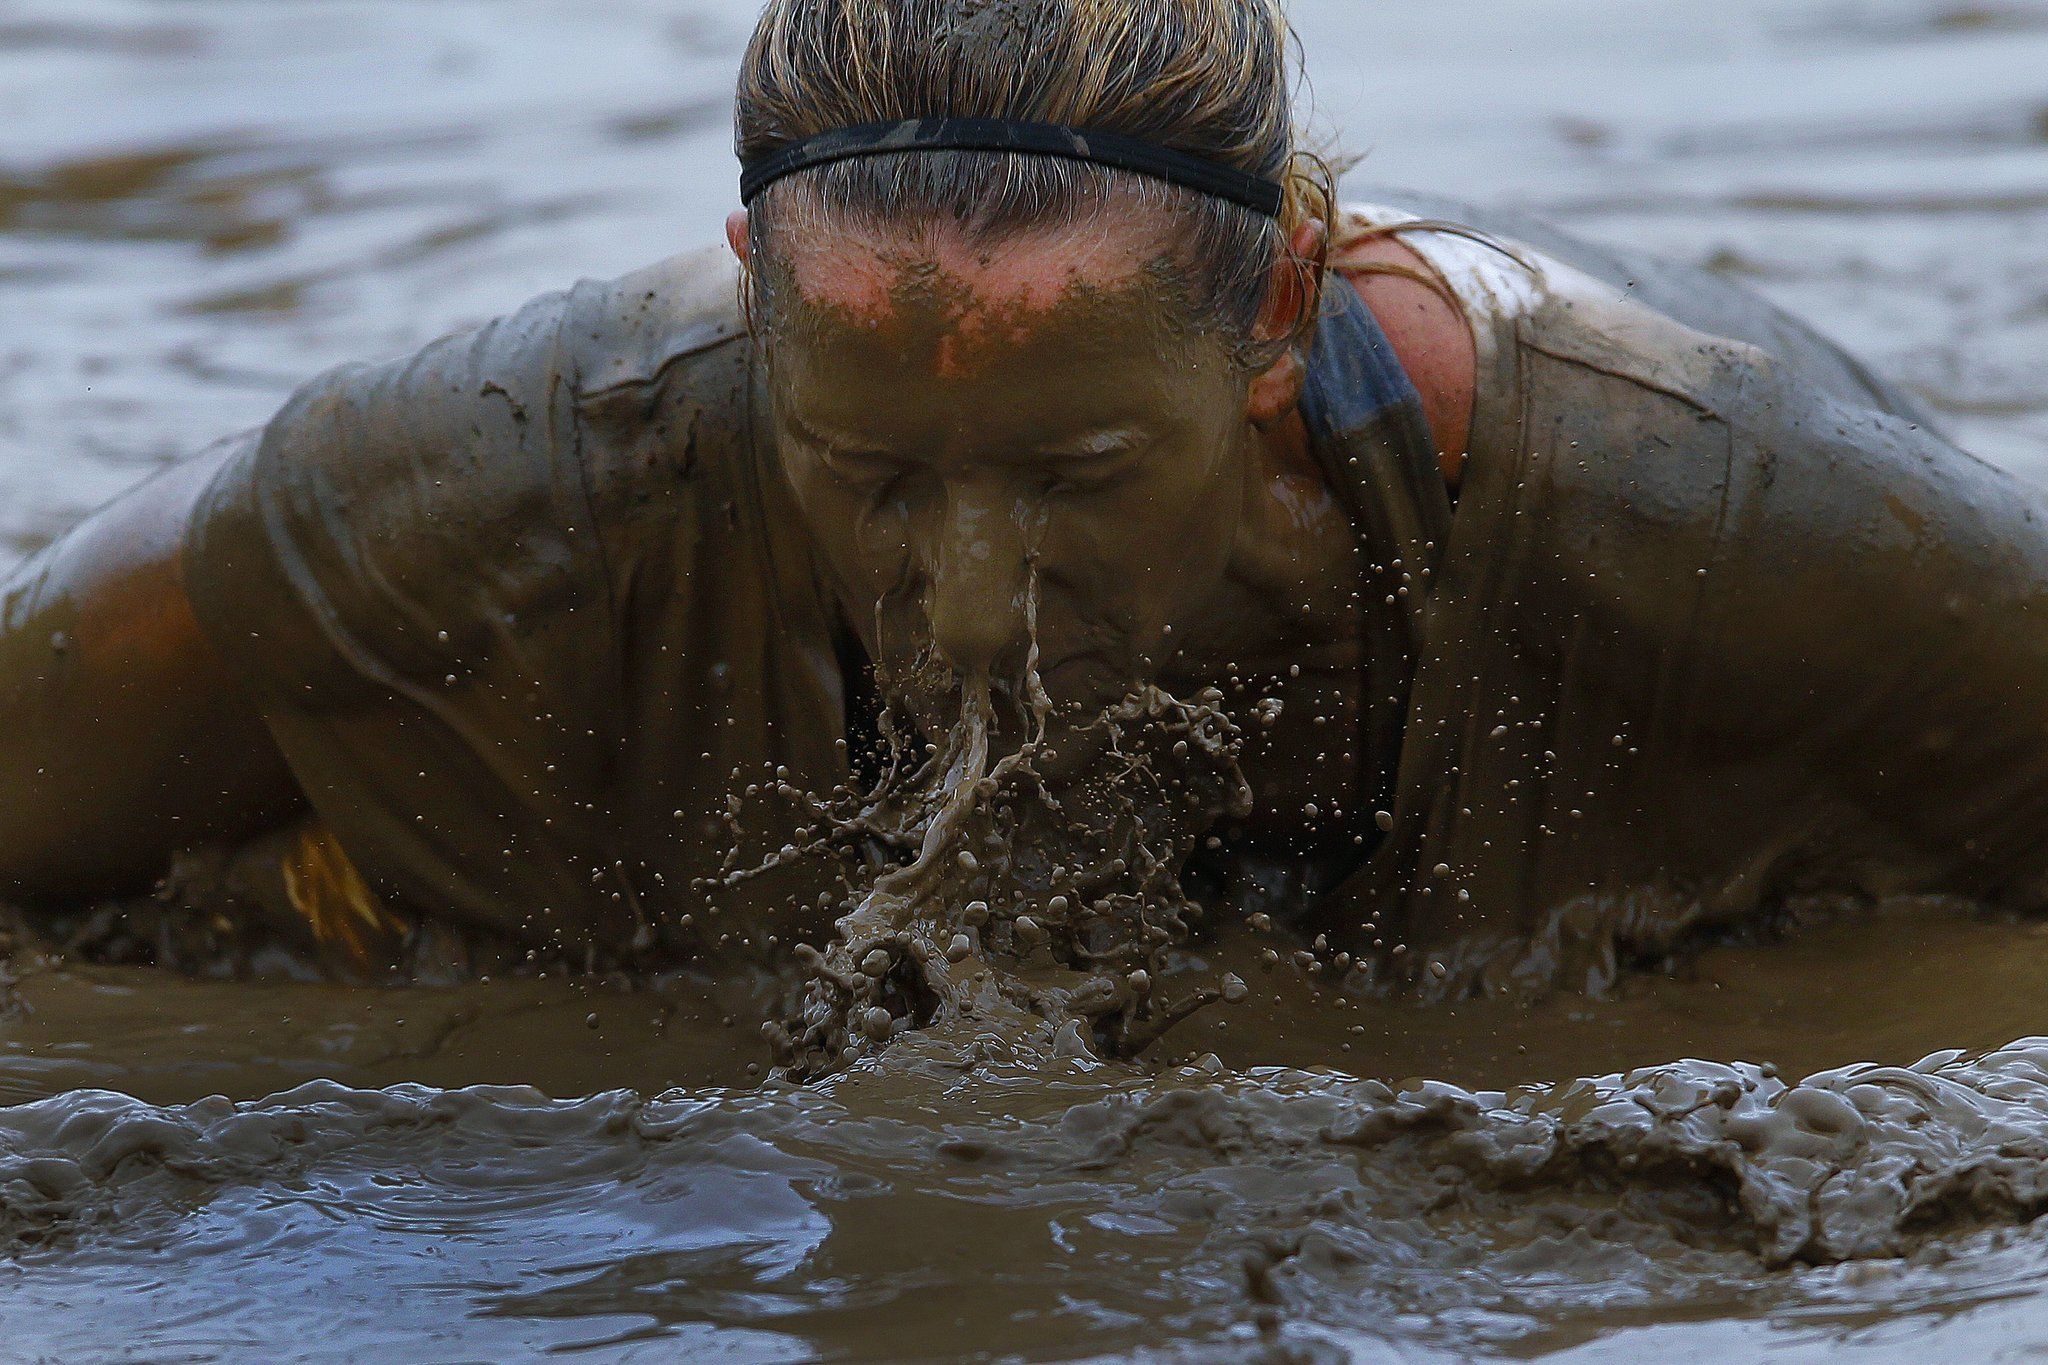 Runners slog through Marine style obstacles in annual Mud Run The